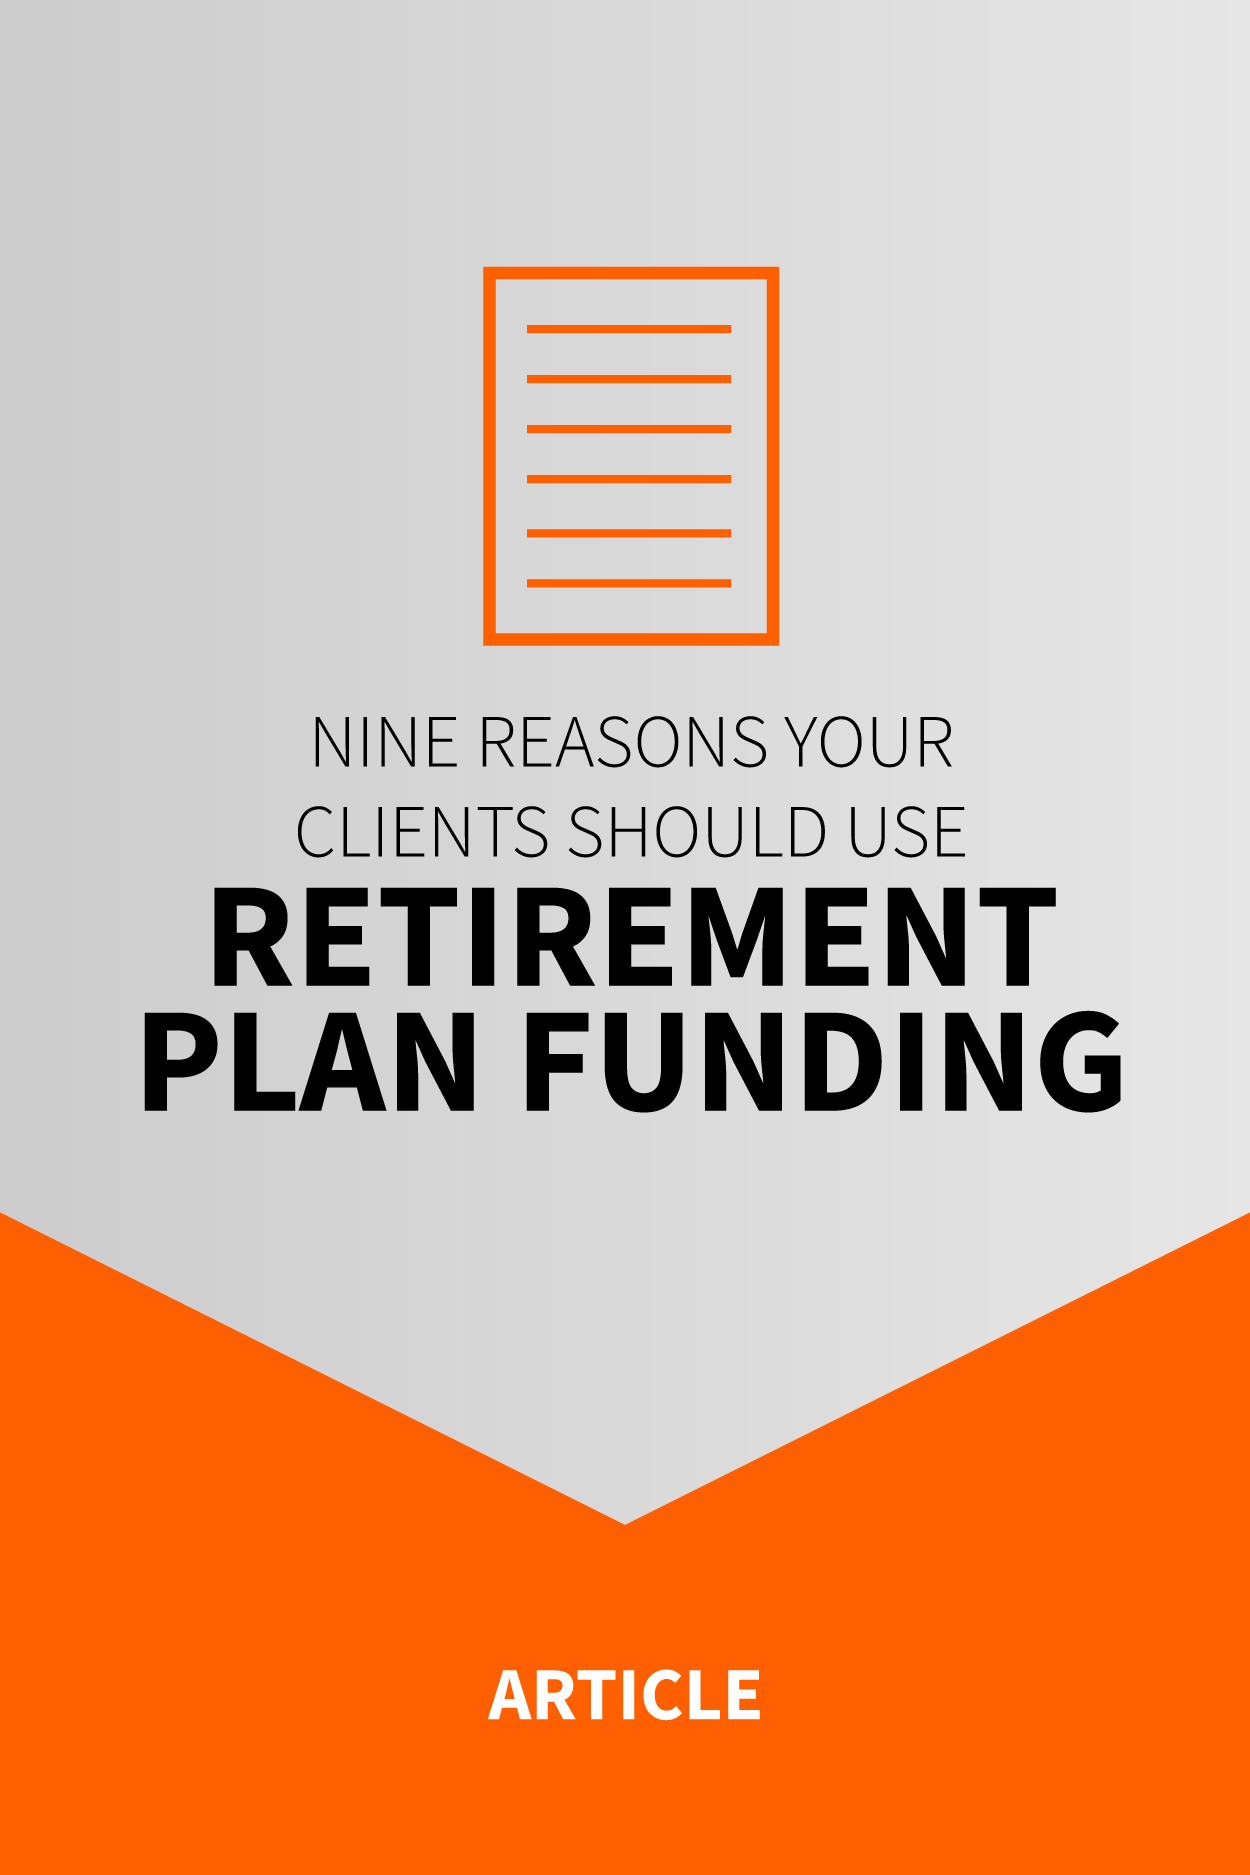 nine-reasons-your-clients-should-use-retirement-plan-funding